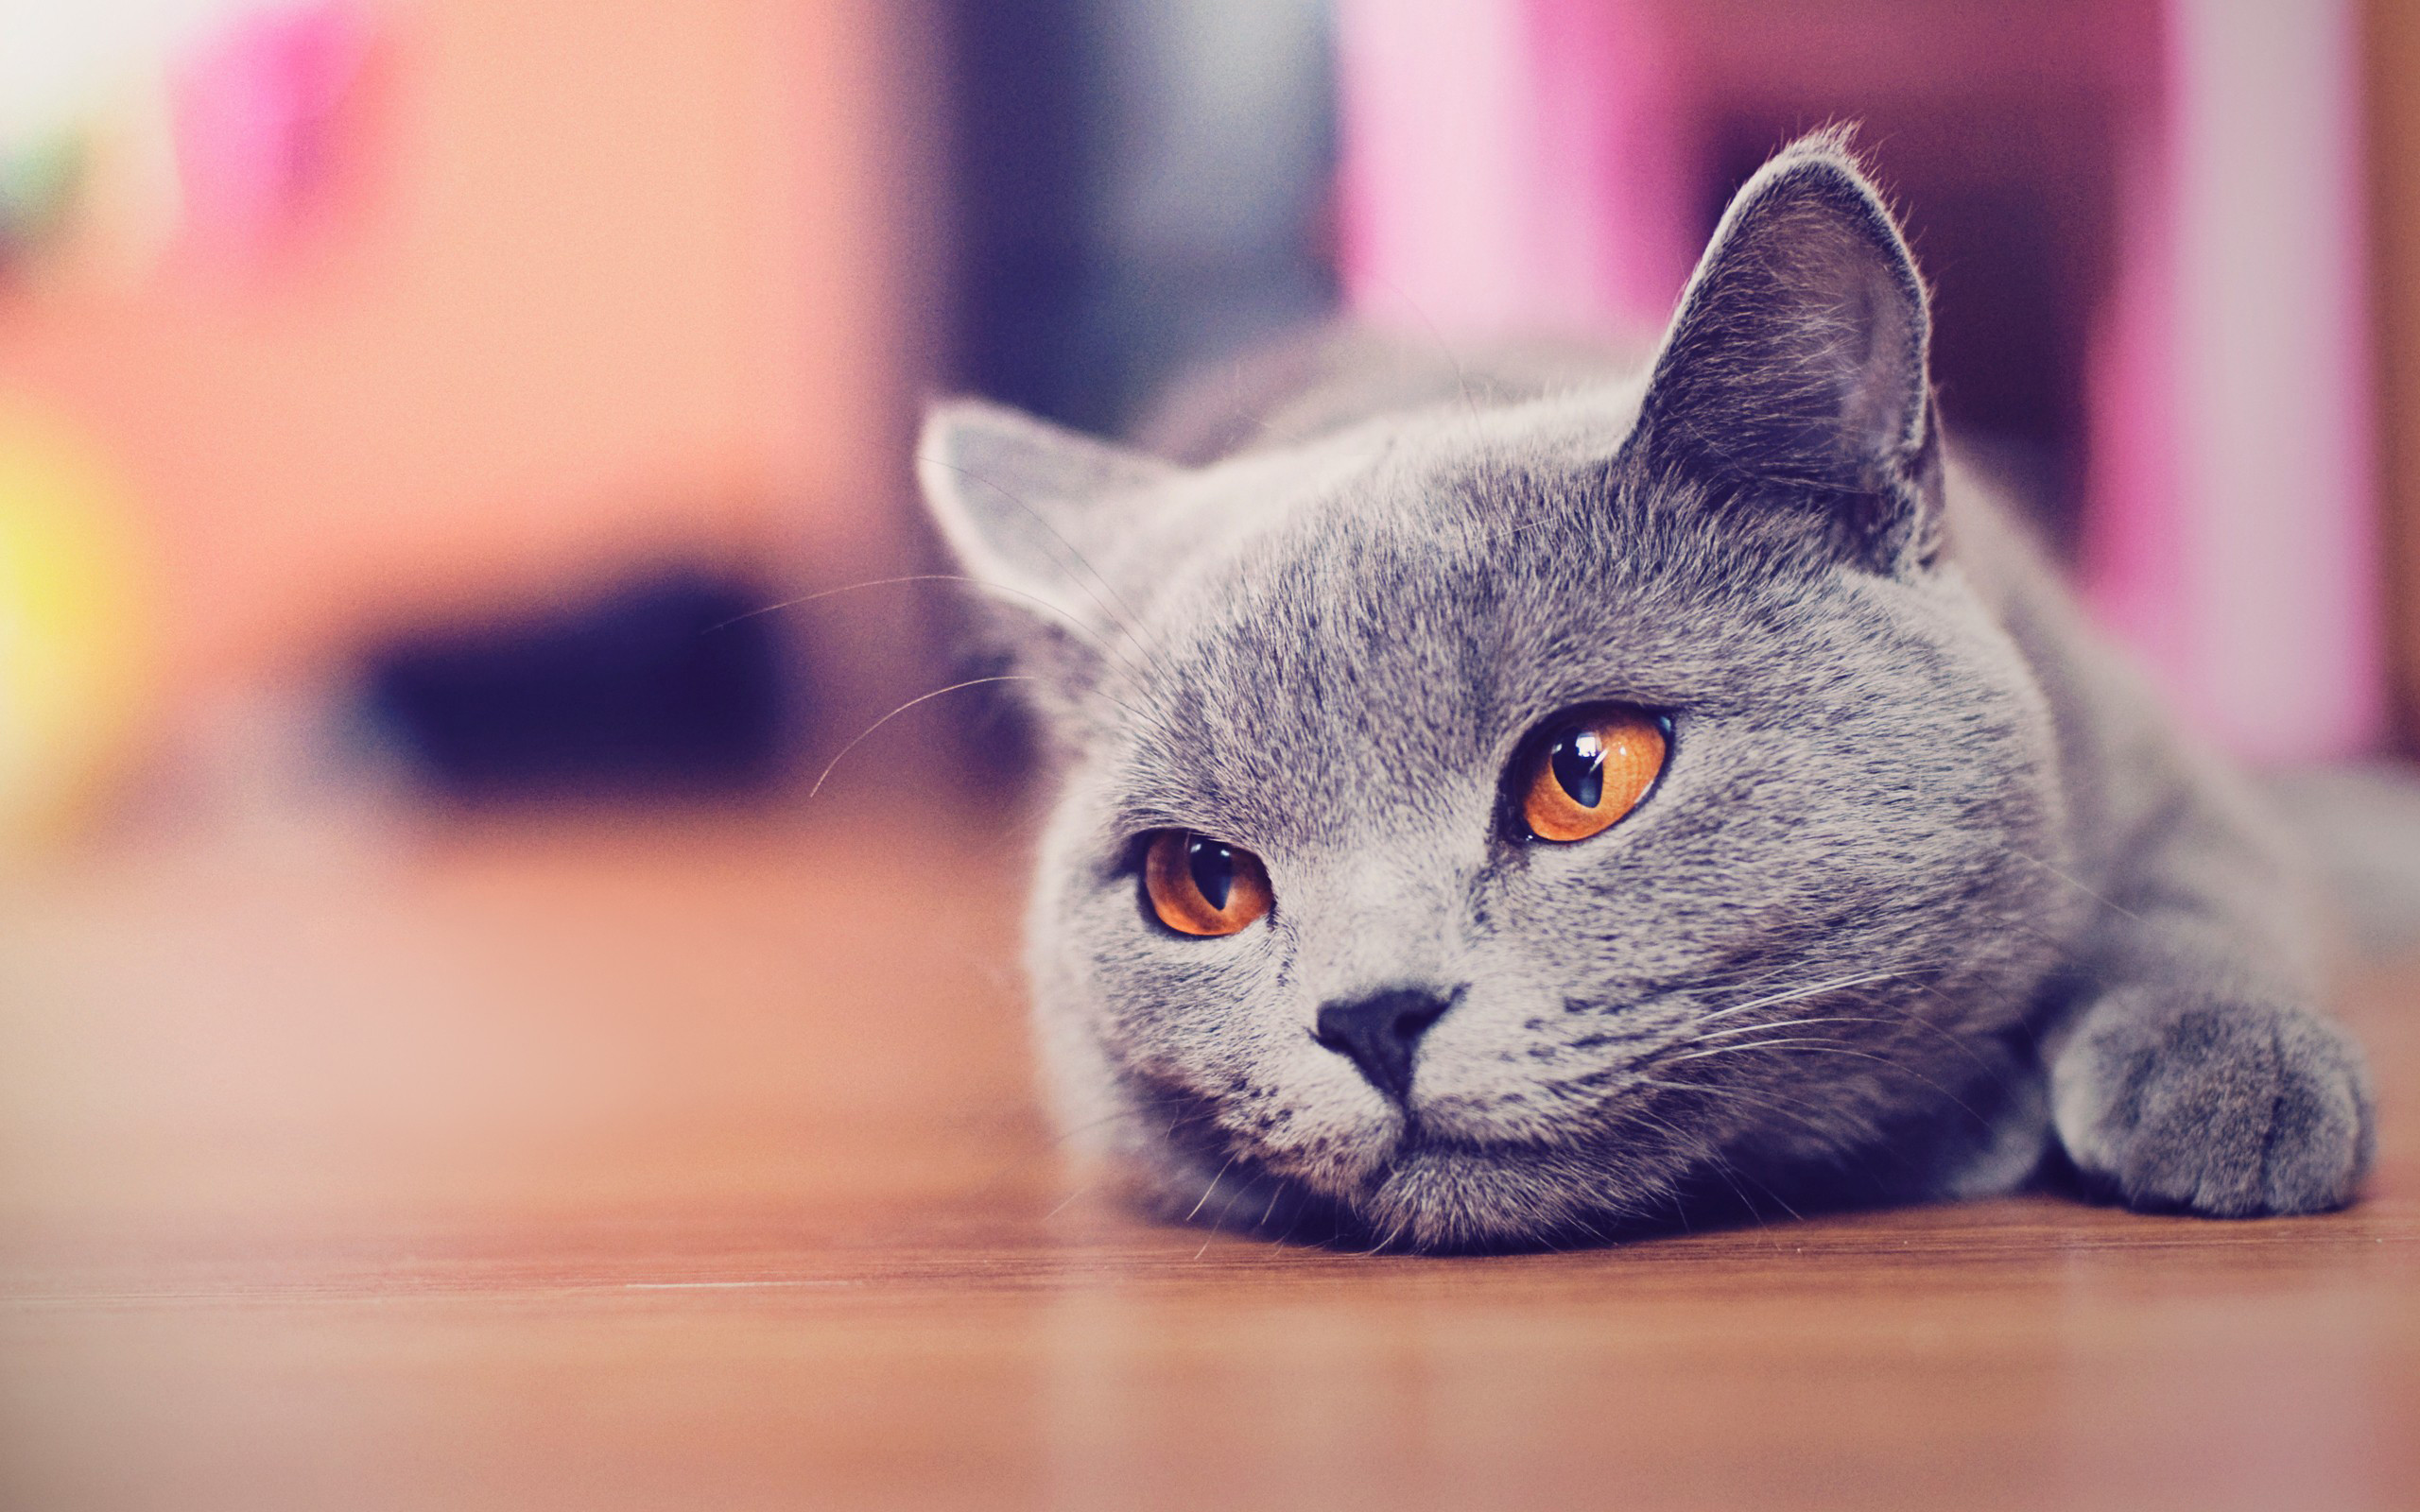 … Cat Wallpaper hd wallpapers Page 0 High Resolution